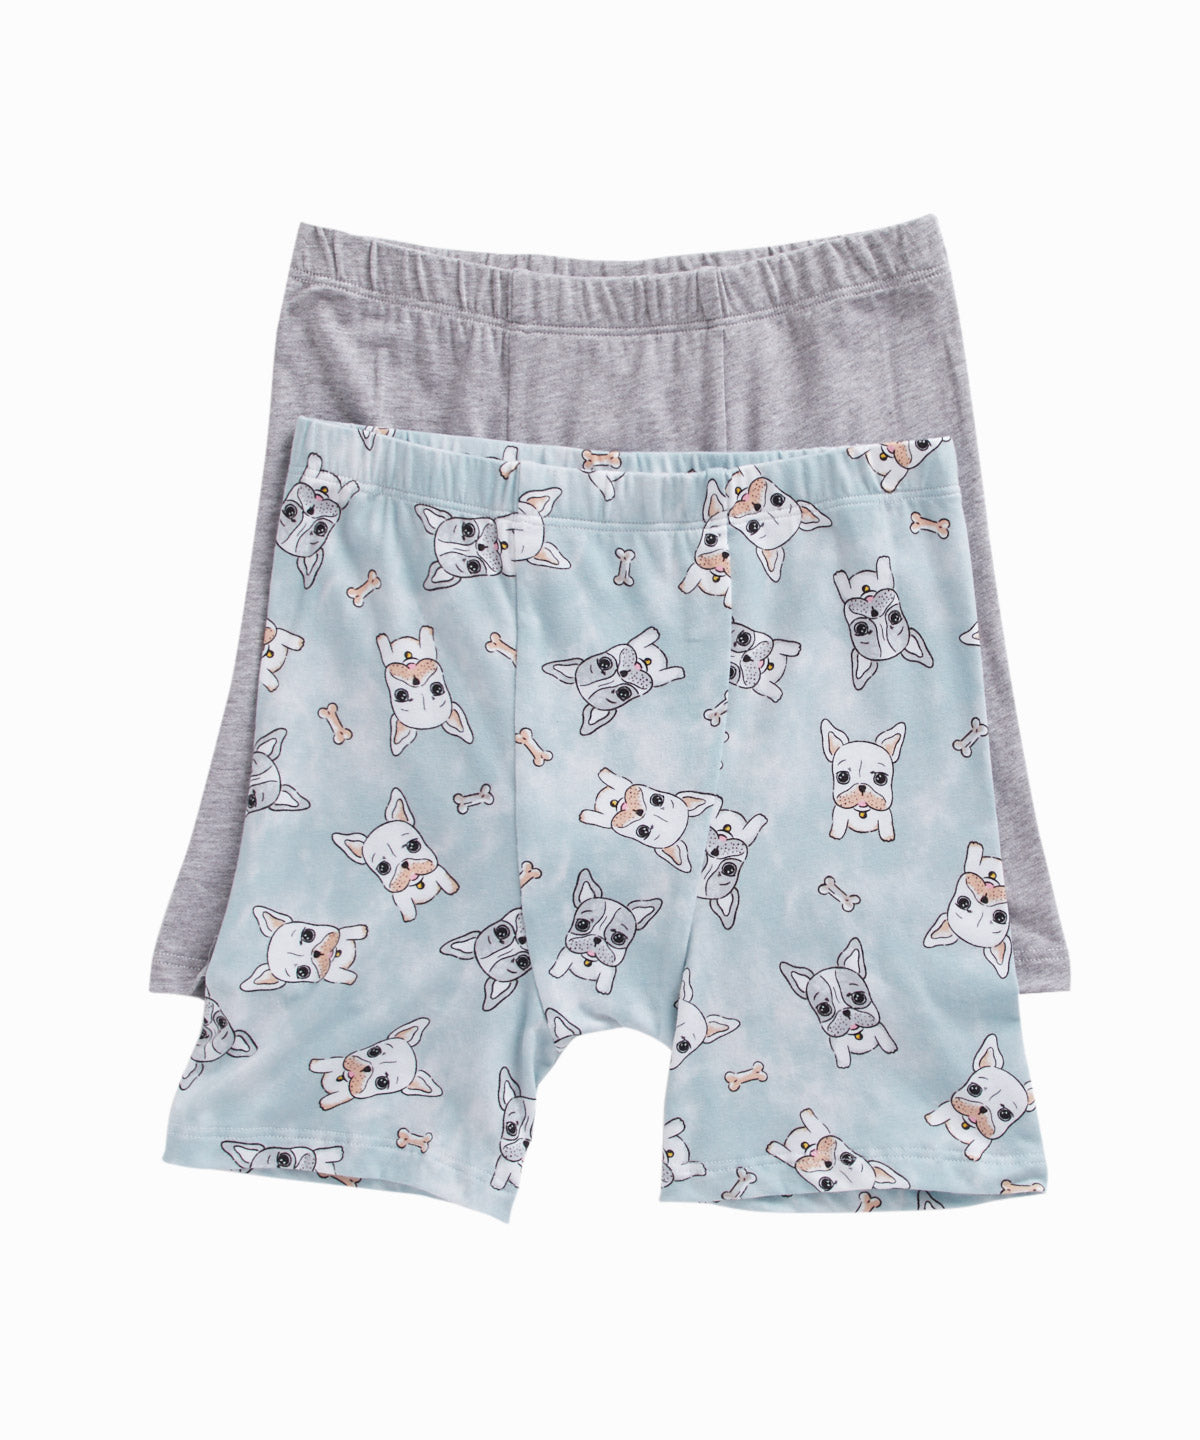 Bulldog Print Set of 2 Boxers